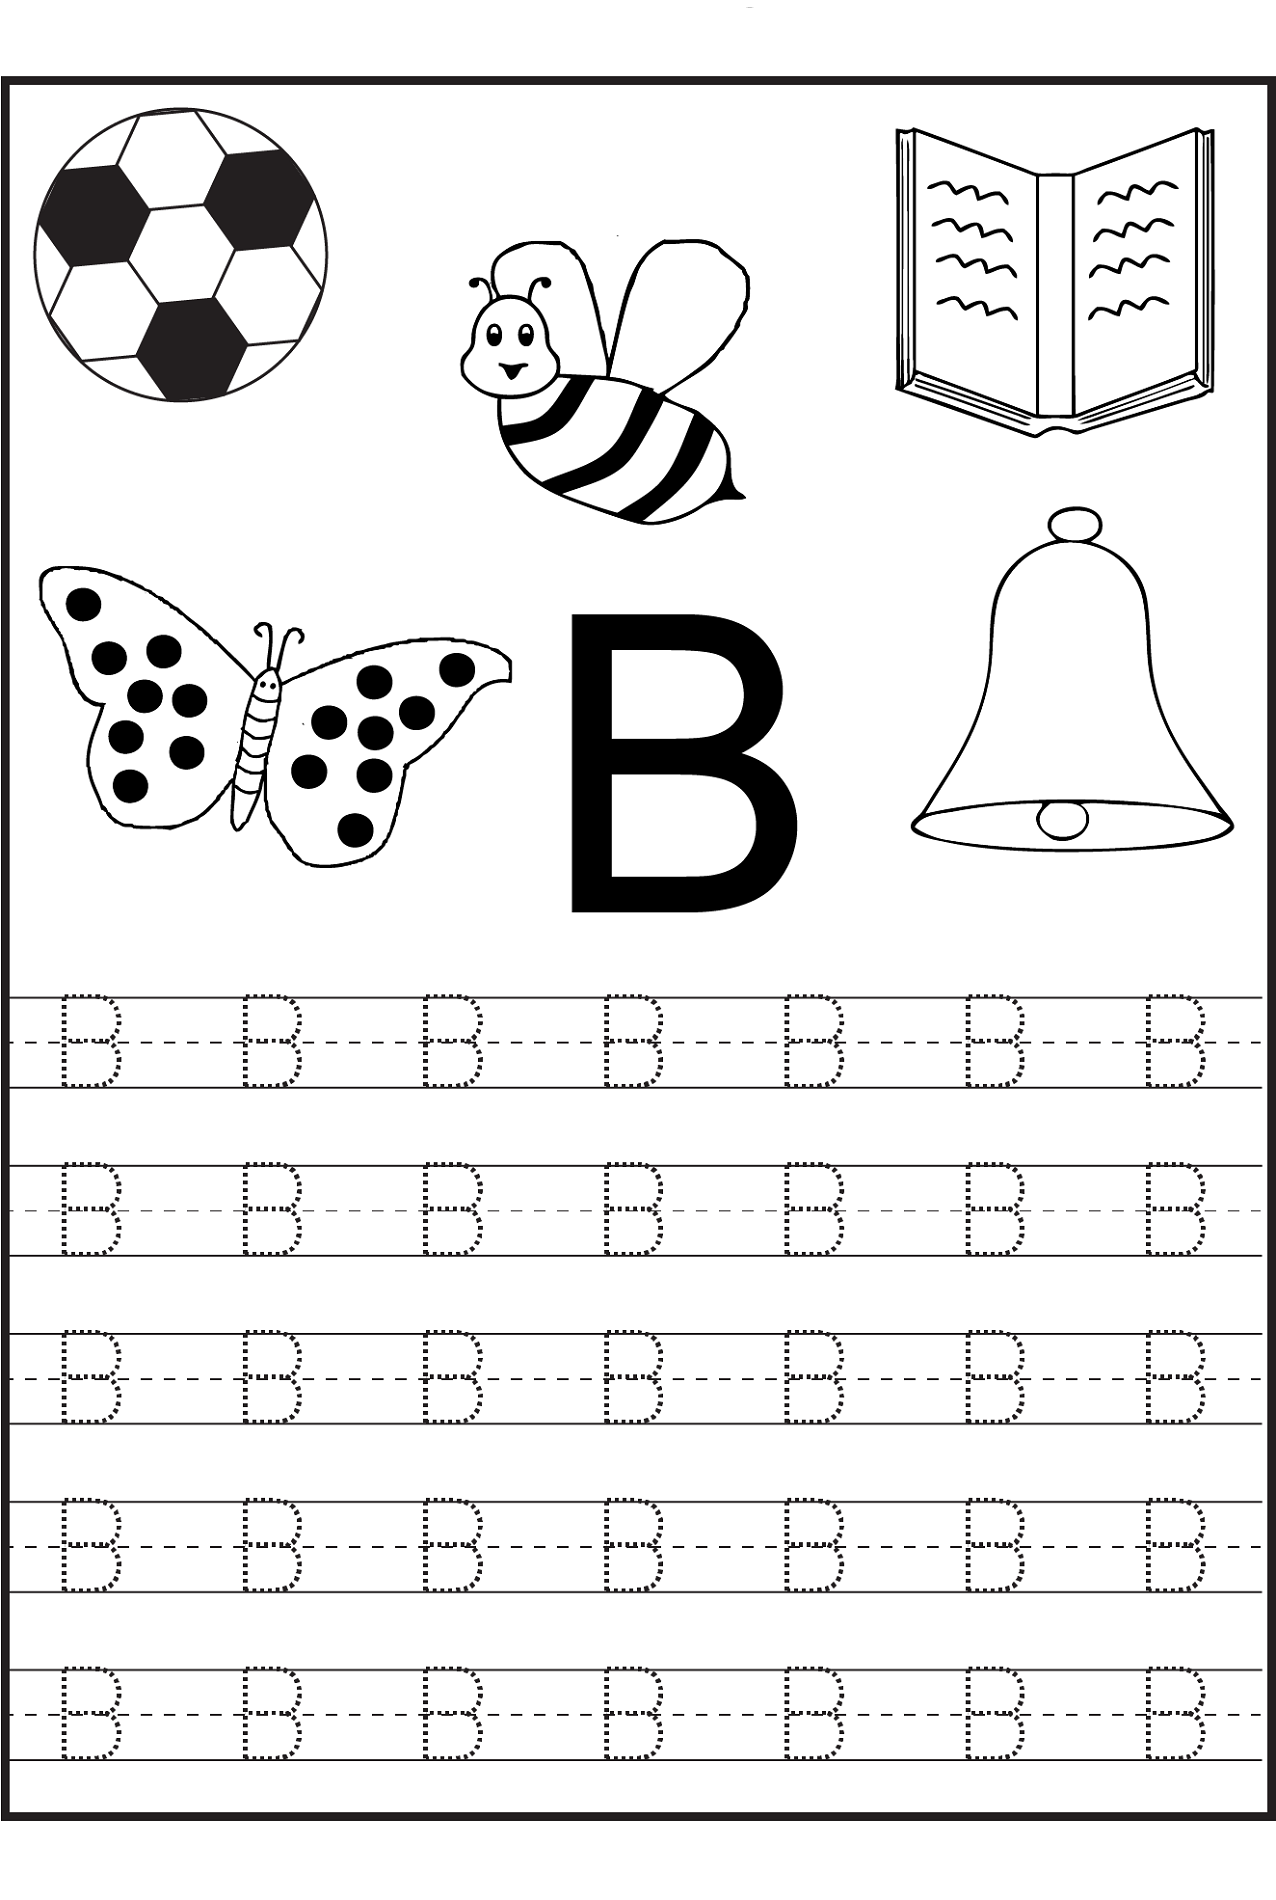 It's just a photo of Impeccable Letter Practice for Preschool